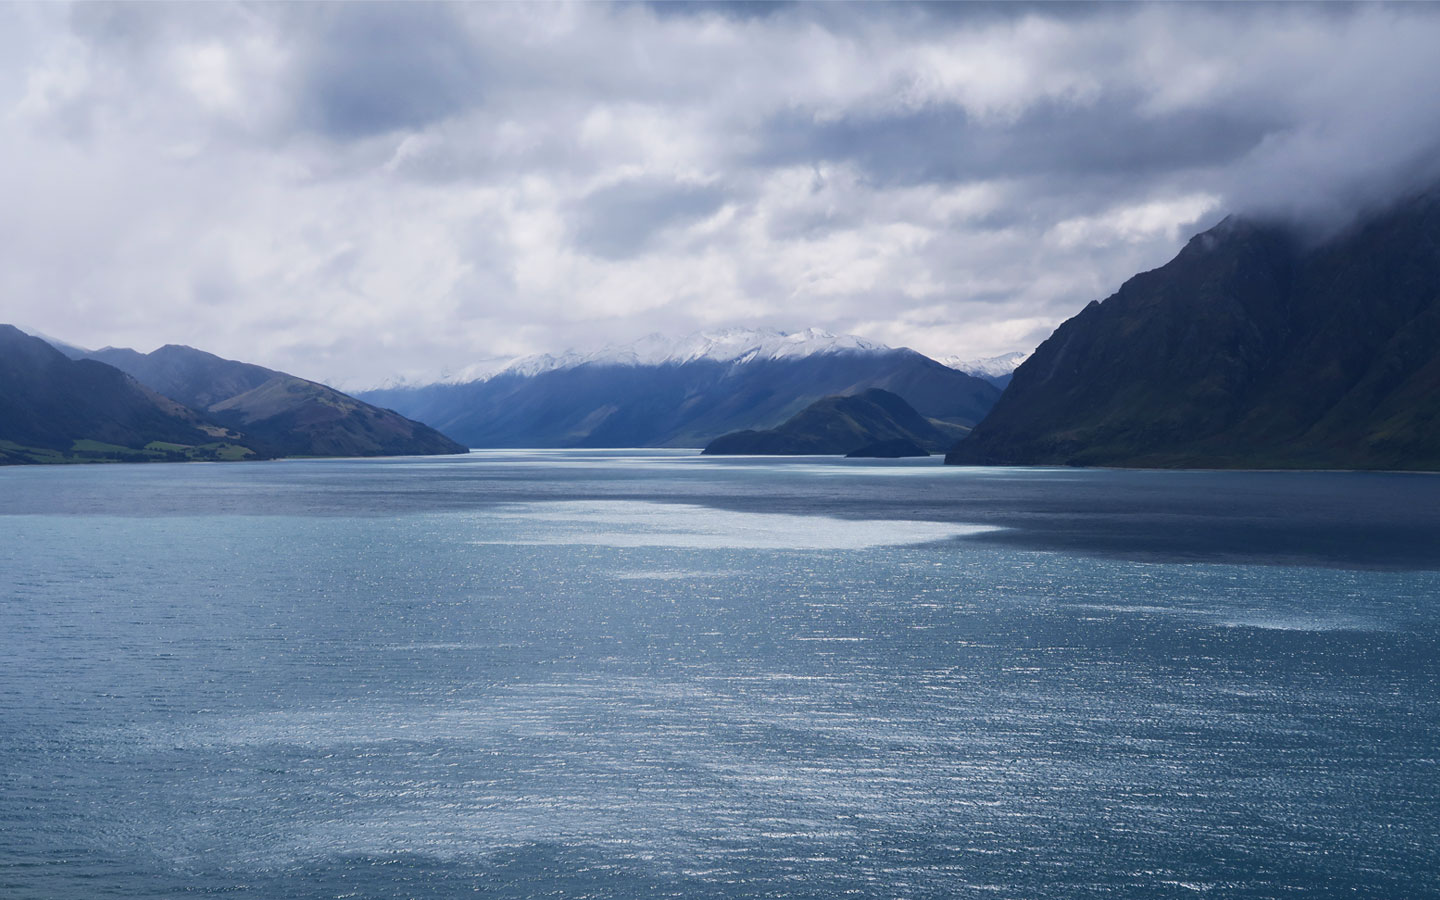 lake hawea with mountains in the background in new zealand